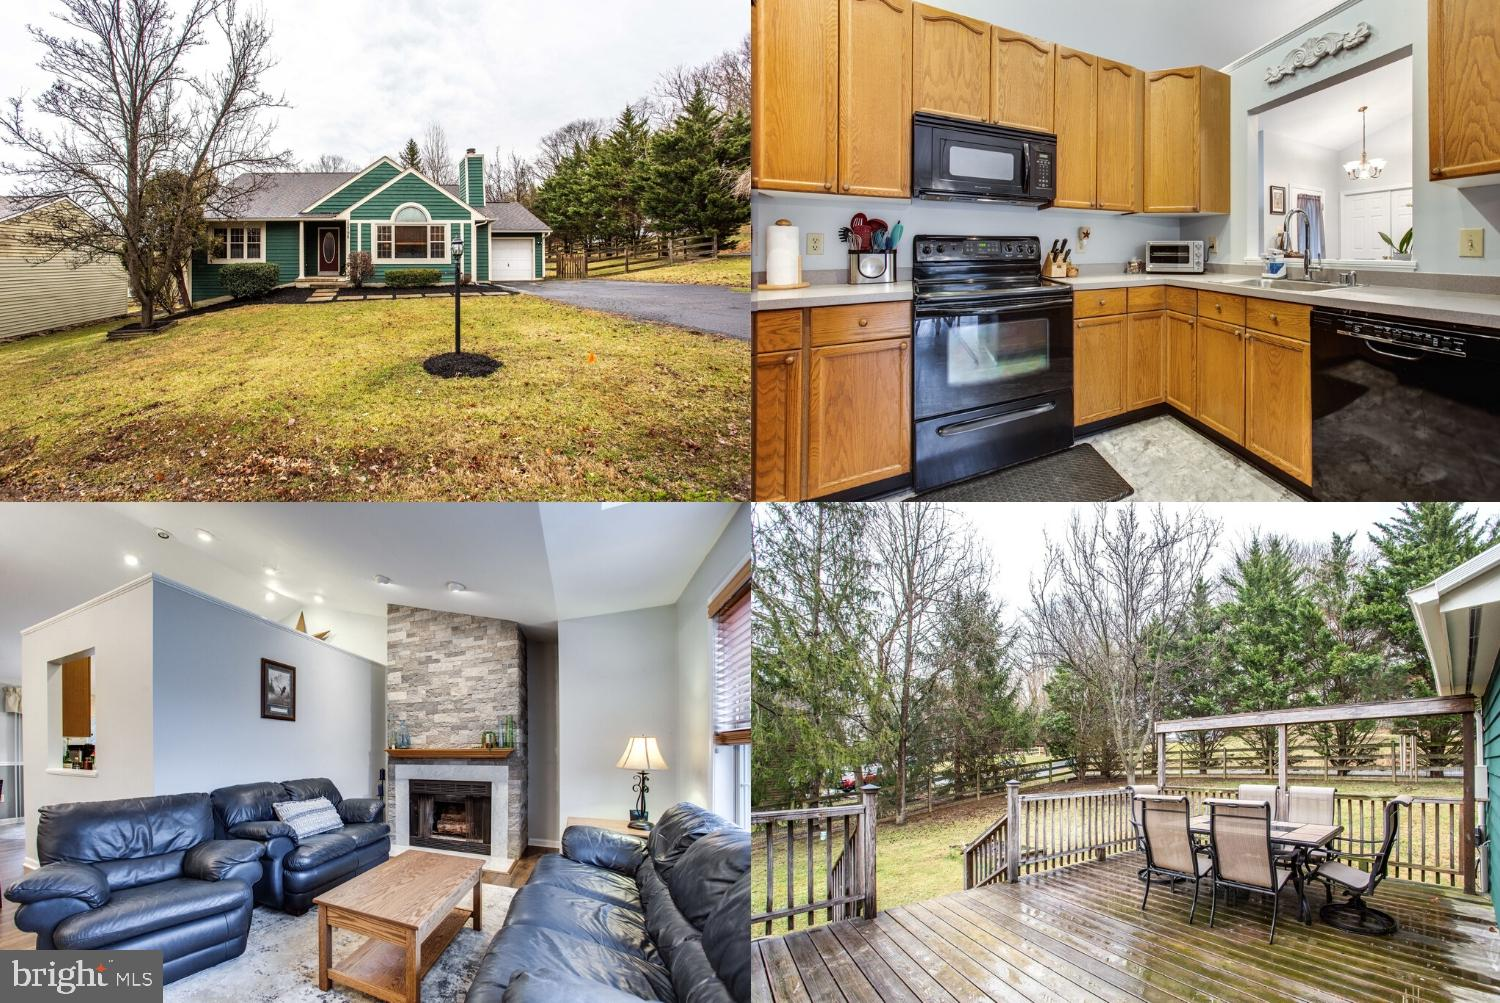 Join the wonderful Lake Linganore community. This charming home sits on a desirable corner lot. 3 bedrooms, 2 1/2 bath and finished basement perfect setting for rec. room, home gym, office, and more! Deceptively spacious interior with gleaming new hardwood floors! Lovely open air kitchen with extensive counter space and updated appliances. Large back deck for entertaining family and friends or just relaxing and enjoying the large fenced yard surrounded by mature trees offering privacy. Beautiful custom stone fireplace sets the tone for comfort in your living room. Freshly painted interior and exterior. Great location! Situated conveniently close to Frederick for dining, shopping, and more! Near I-70 and I-270 for easy commutes! Plenty of nearby activities and amenities including hiking, kayaking, dog park, sport courts, and pools! Must see home and community!